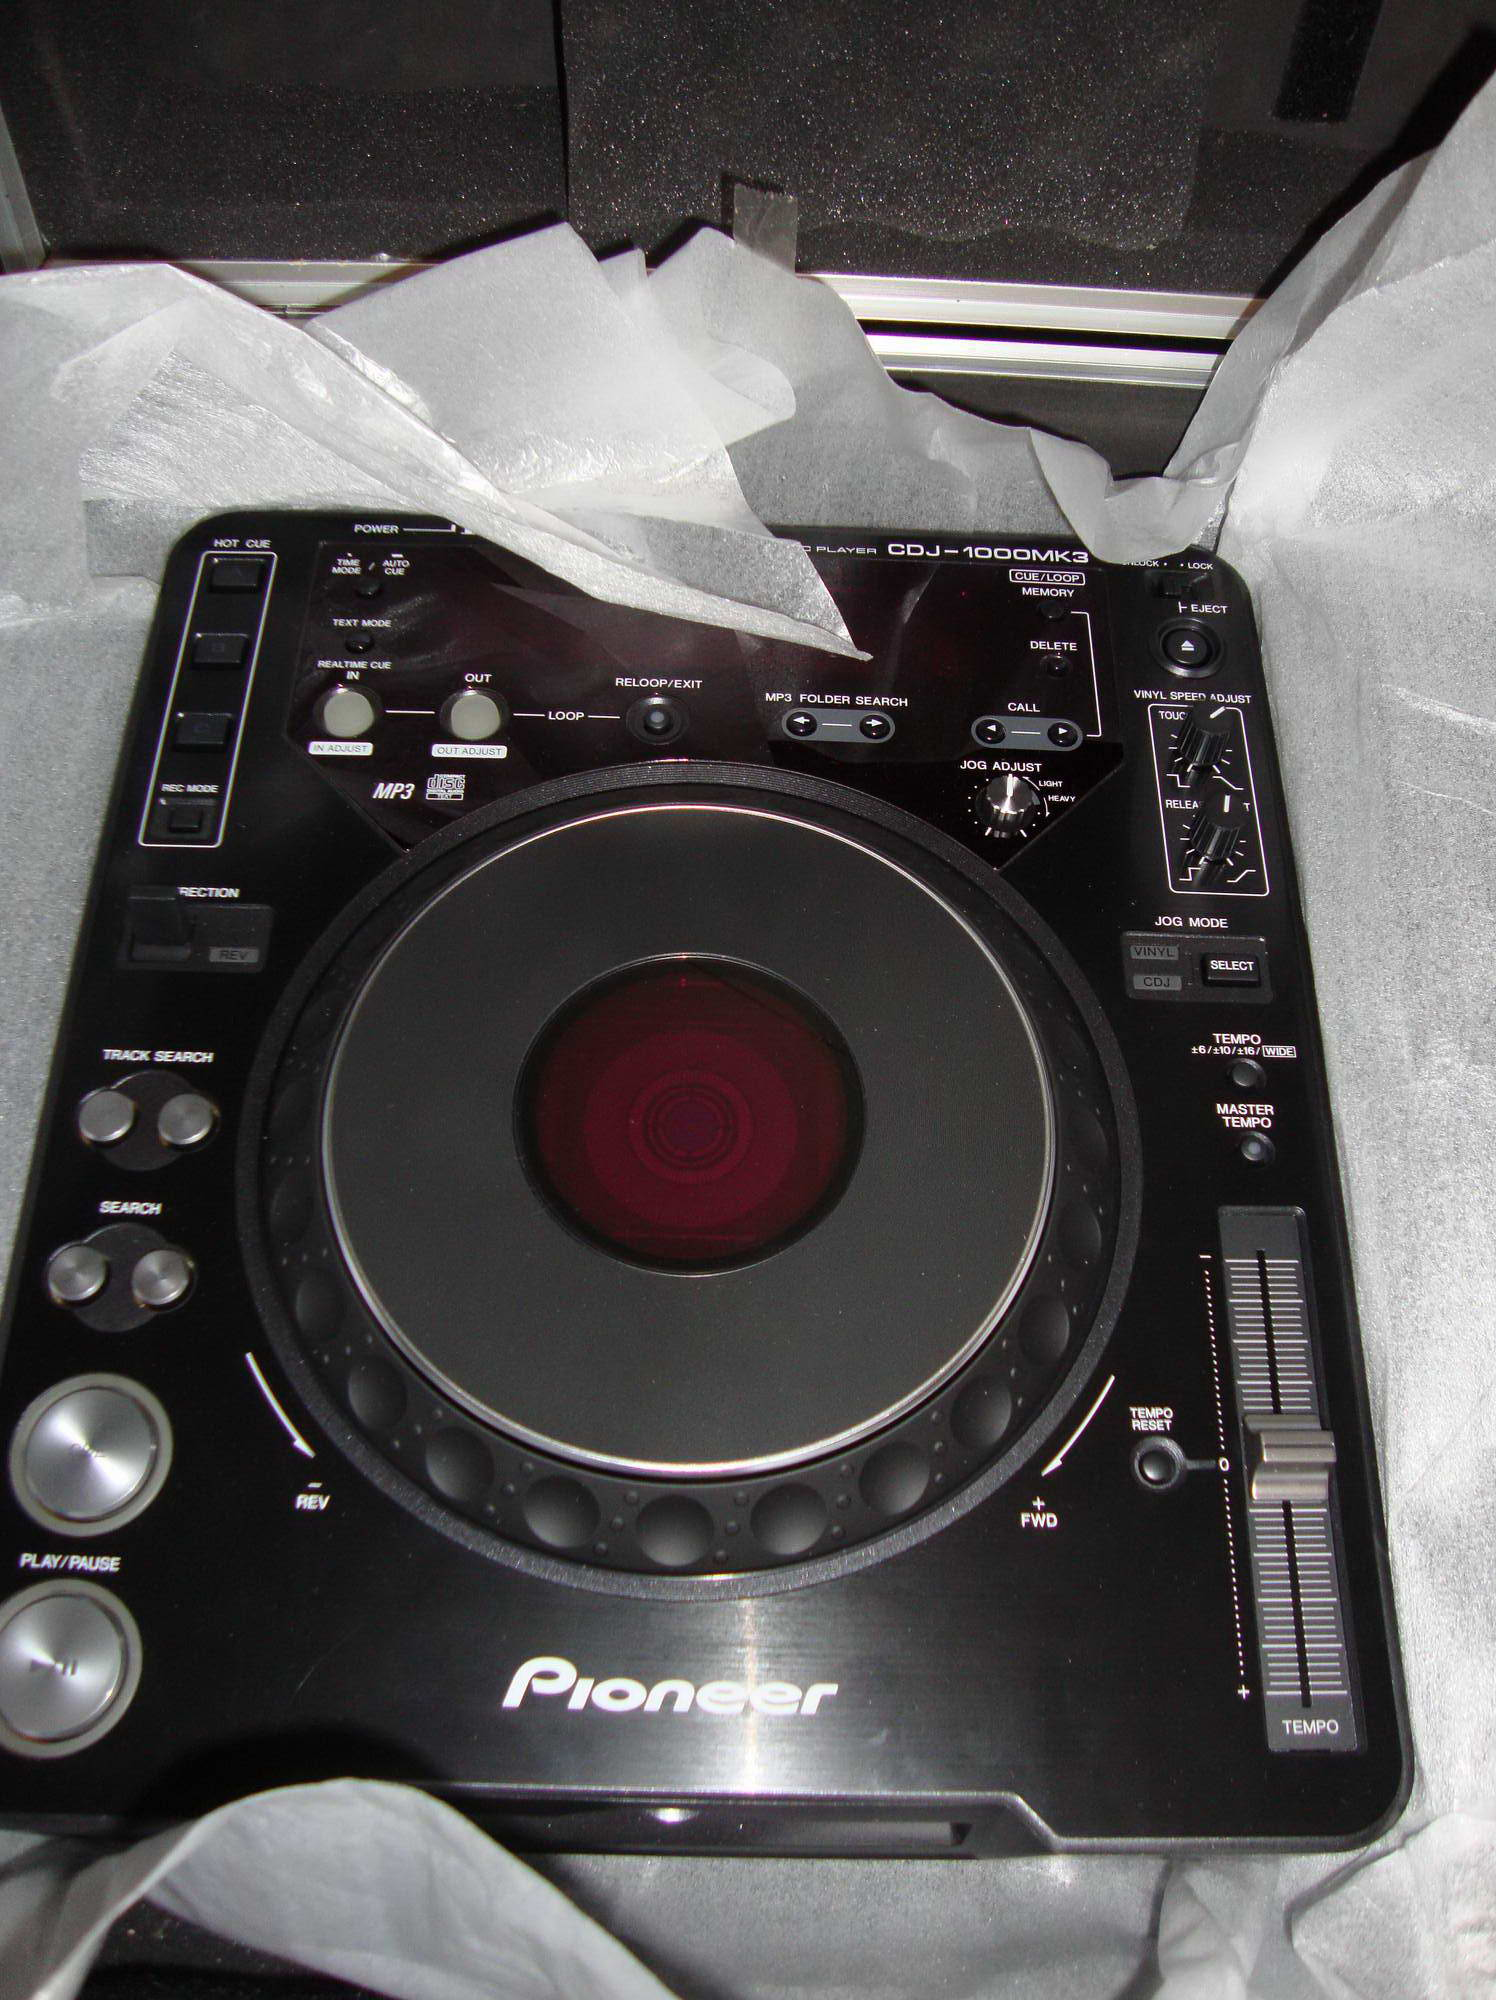 DJ PLAYER Package contact 0174-869-4804  | ClickBD large image 0